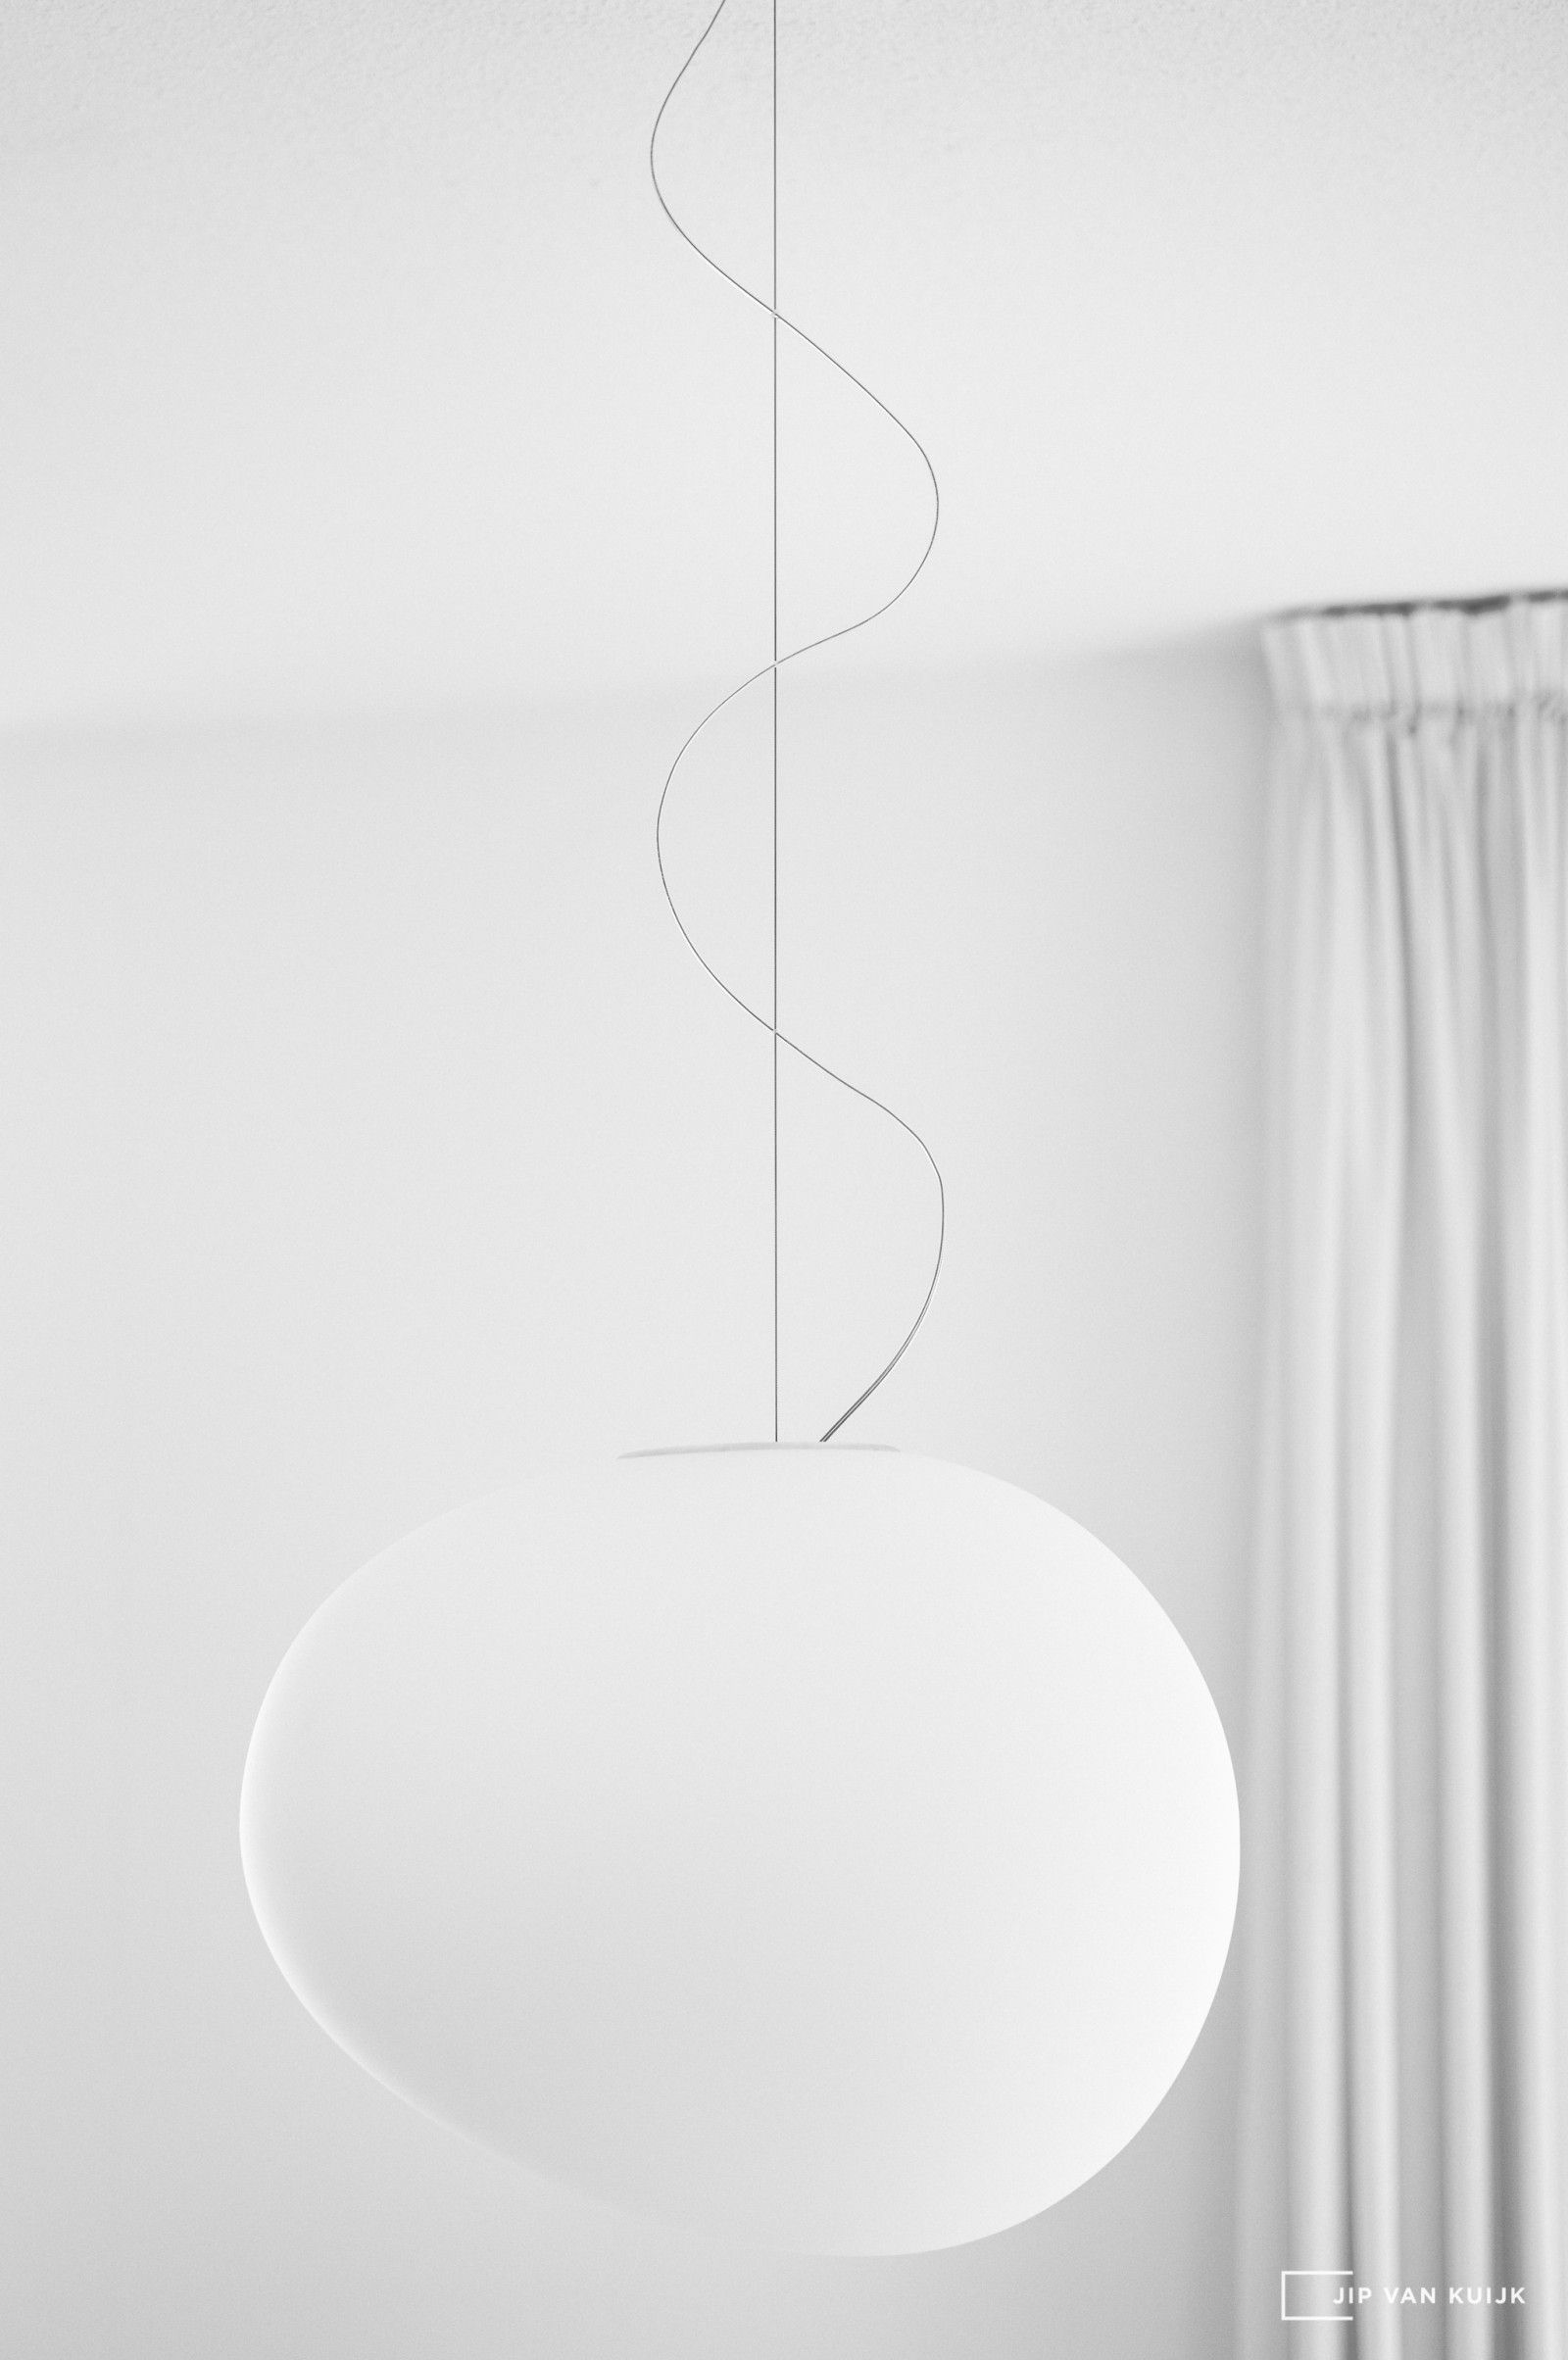 foscarini gregg grande suspension jipvankuijk leica s typ006 70mm